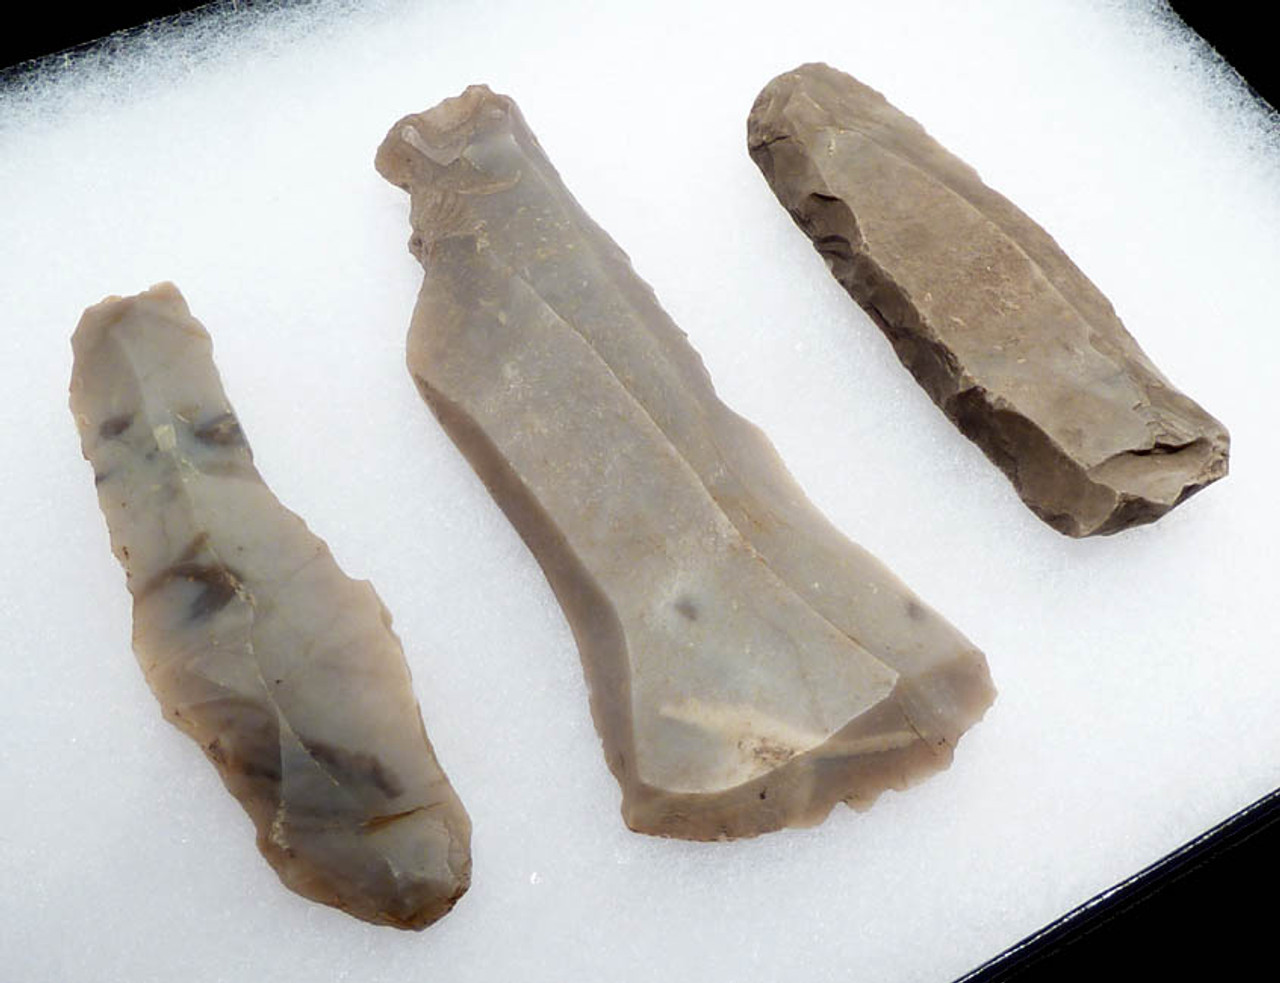 N115 - SUPERB SET OF 3 UNBROKEN LONG FLINT EUROPEAN NEOLITHIC STONE KNIFE BLADES WITH VARIOUS EDUCATIONAL FEATURES